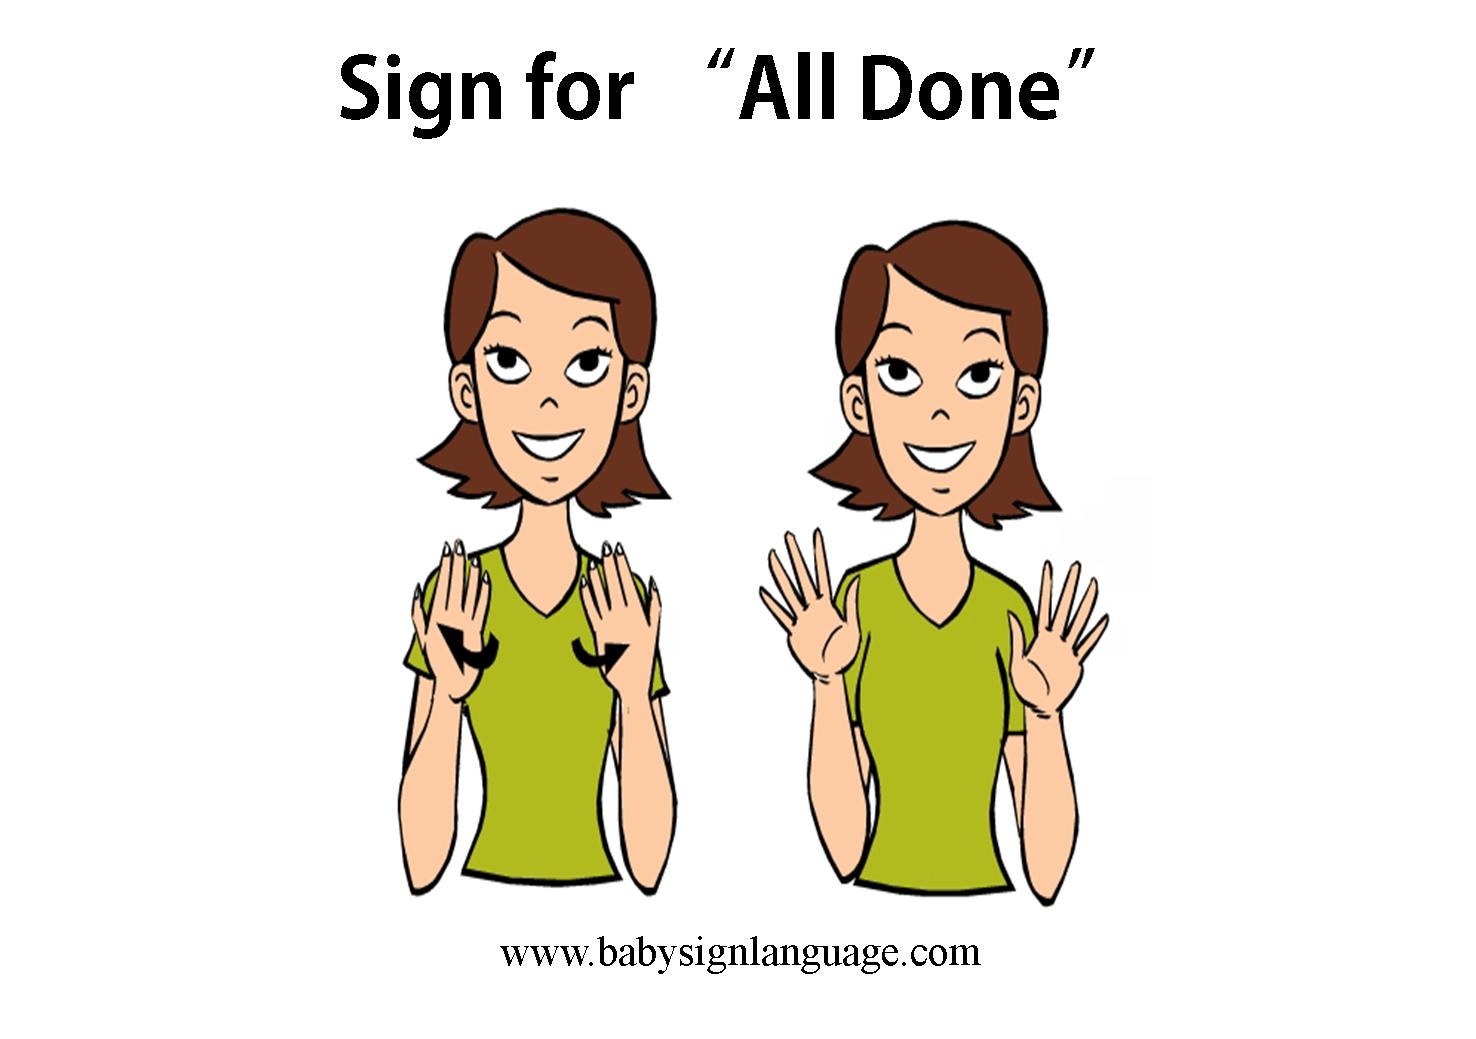 Sign language top 10 beginner signs every child should learn